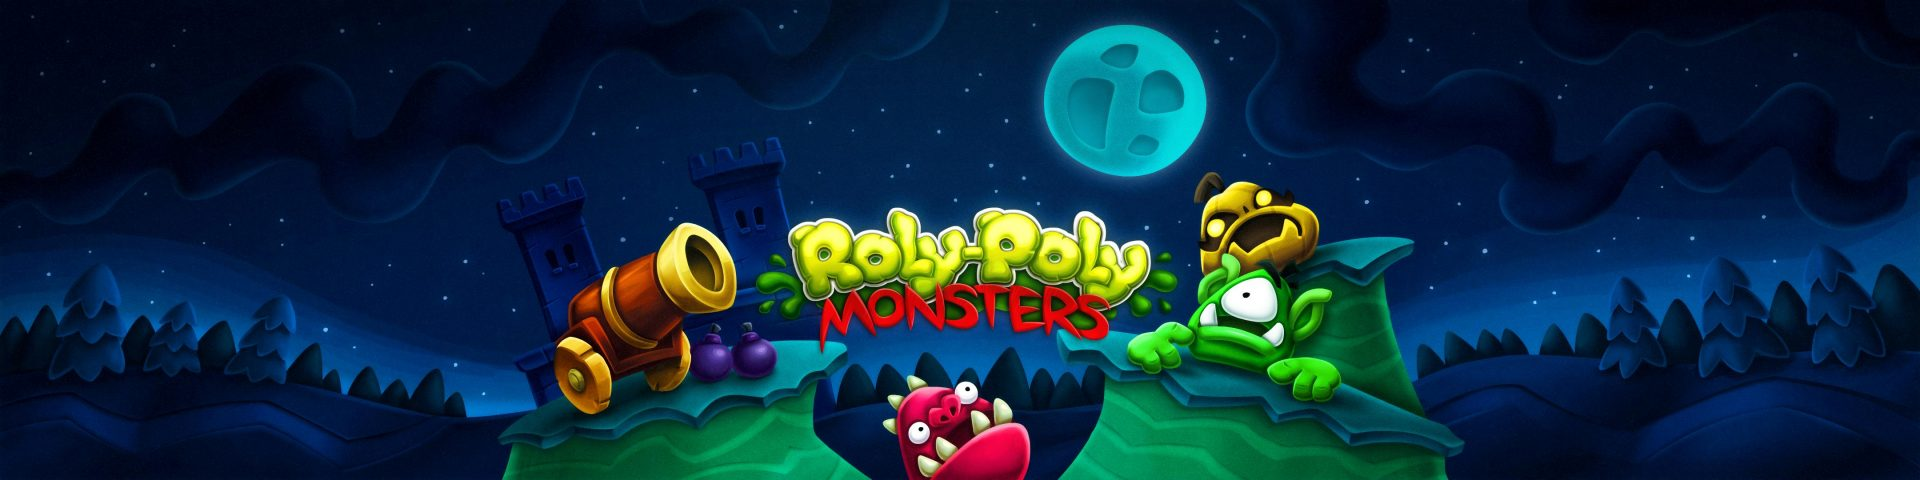 Roly Poly Monsters